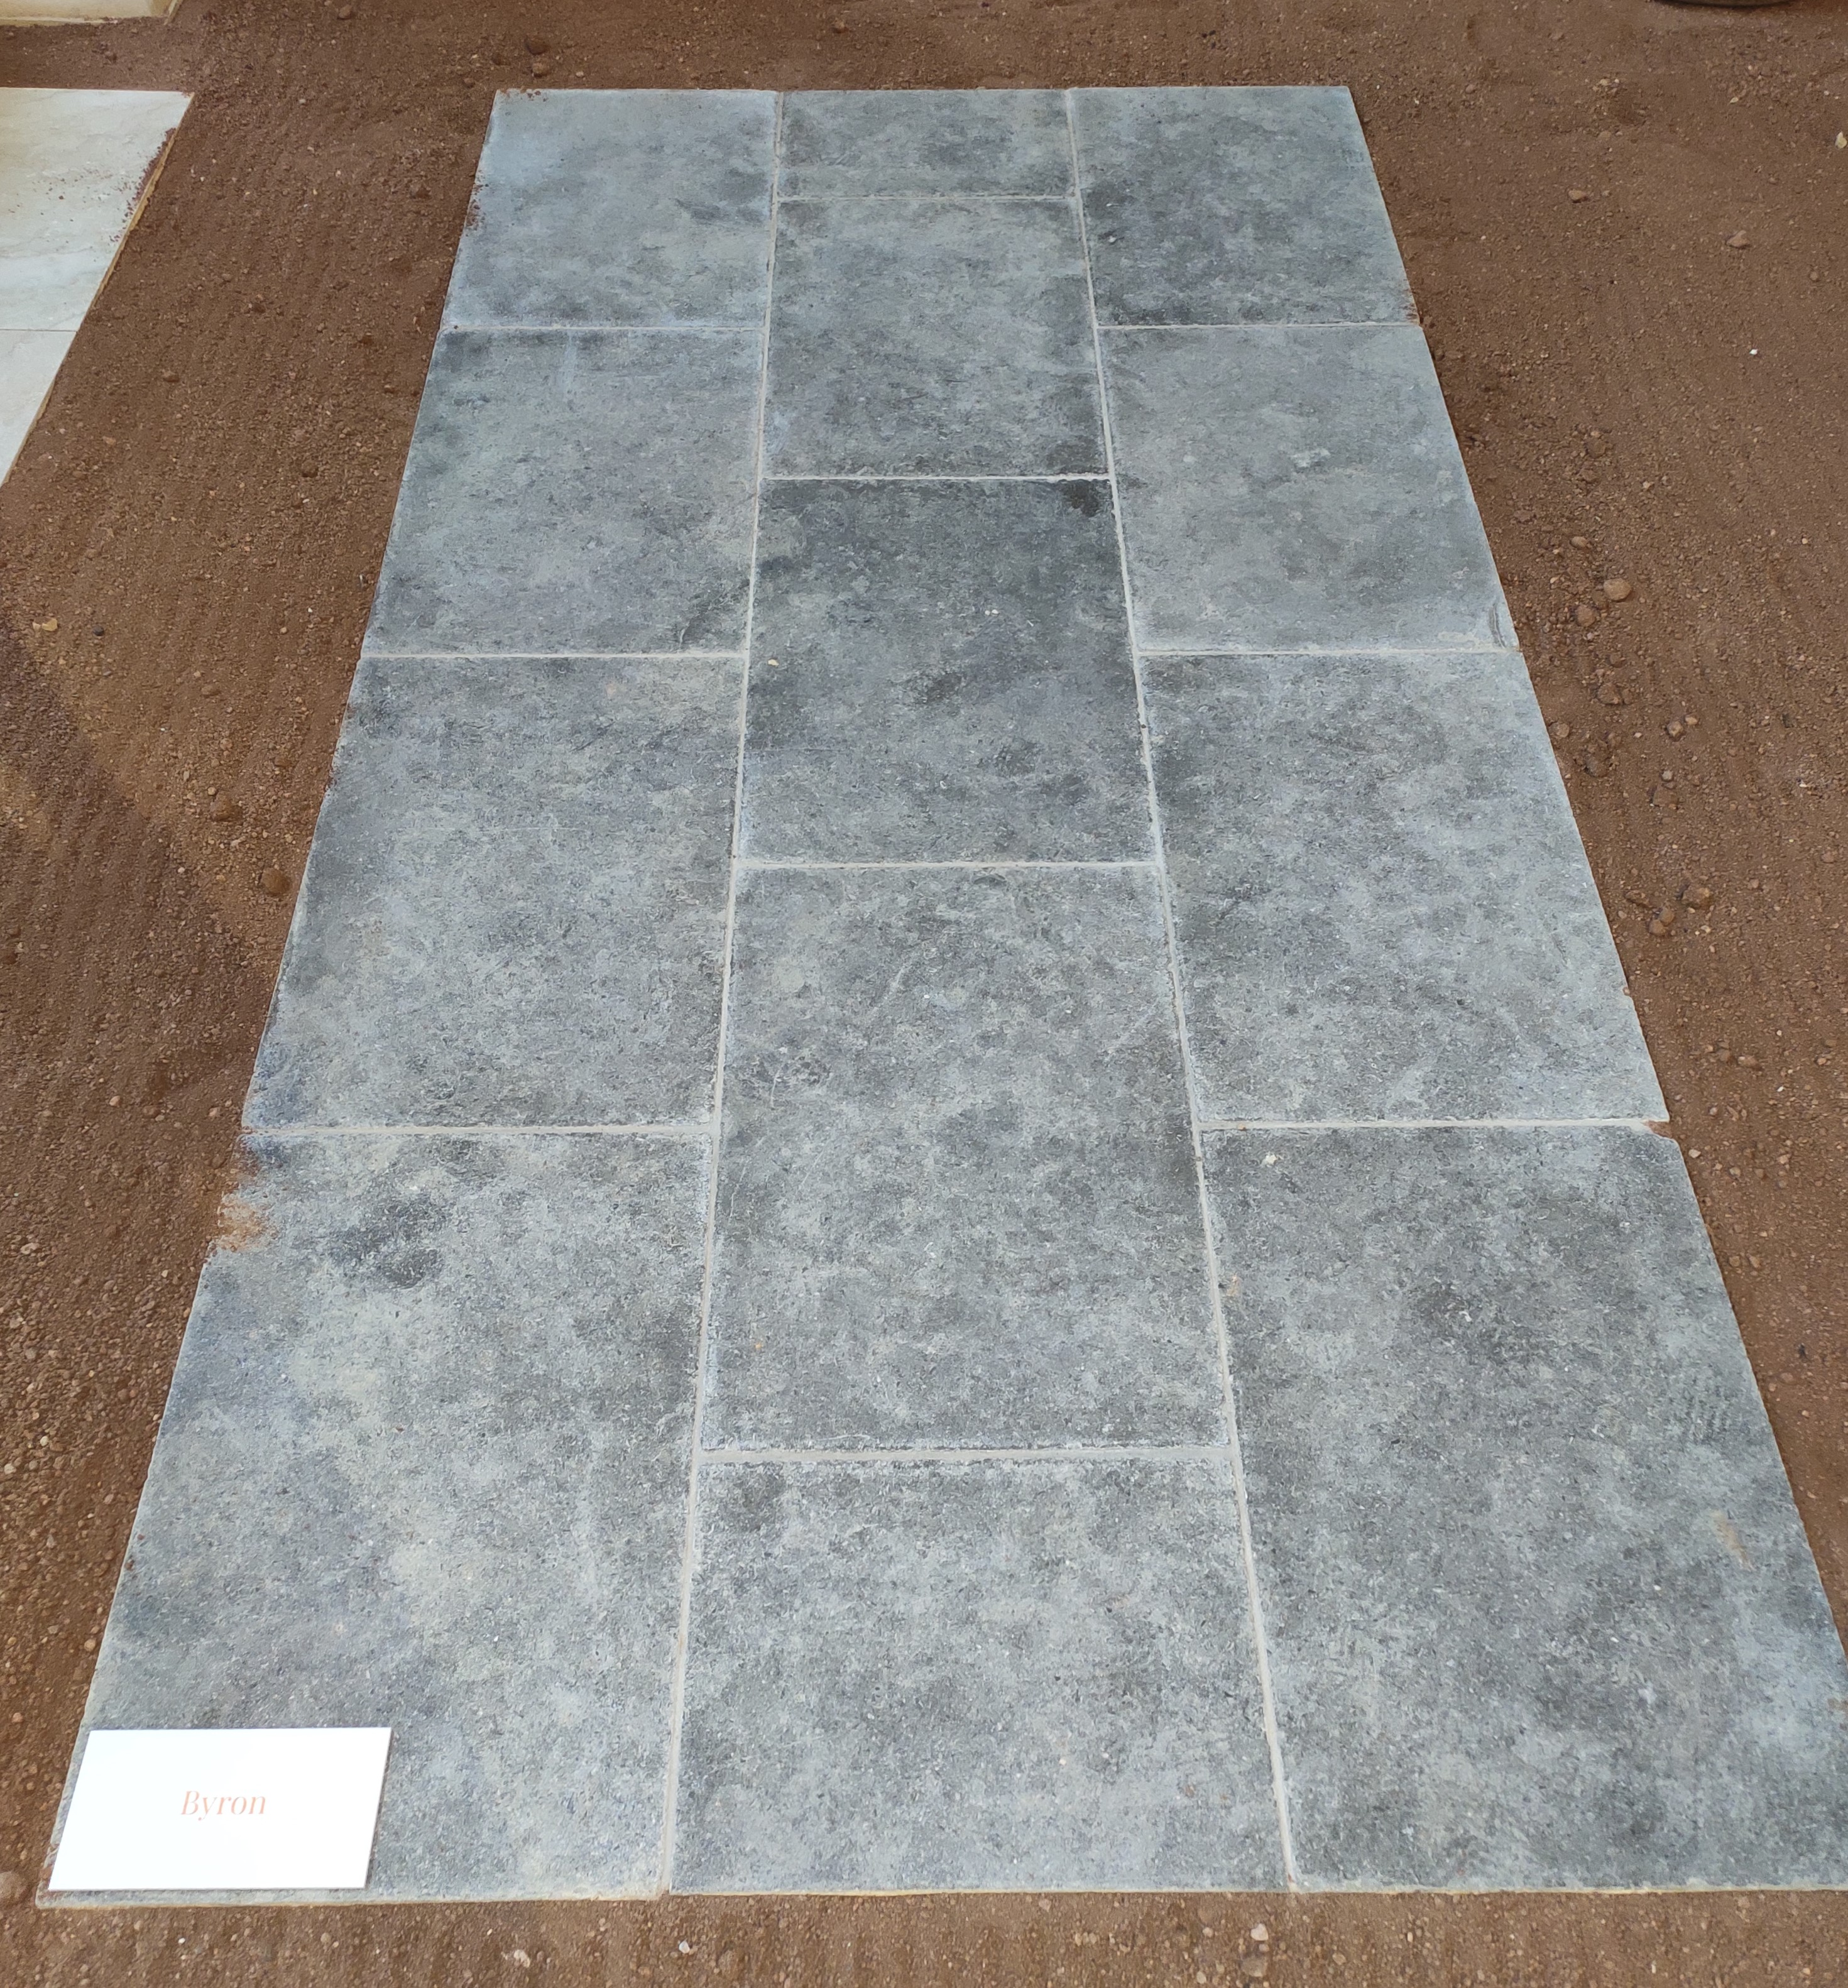 Byron limestone tiles and pavers displayed in Aussietecture stone Sydney showroom